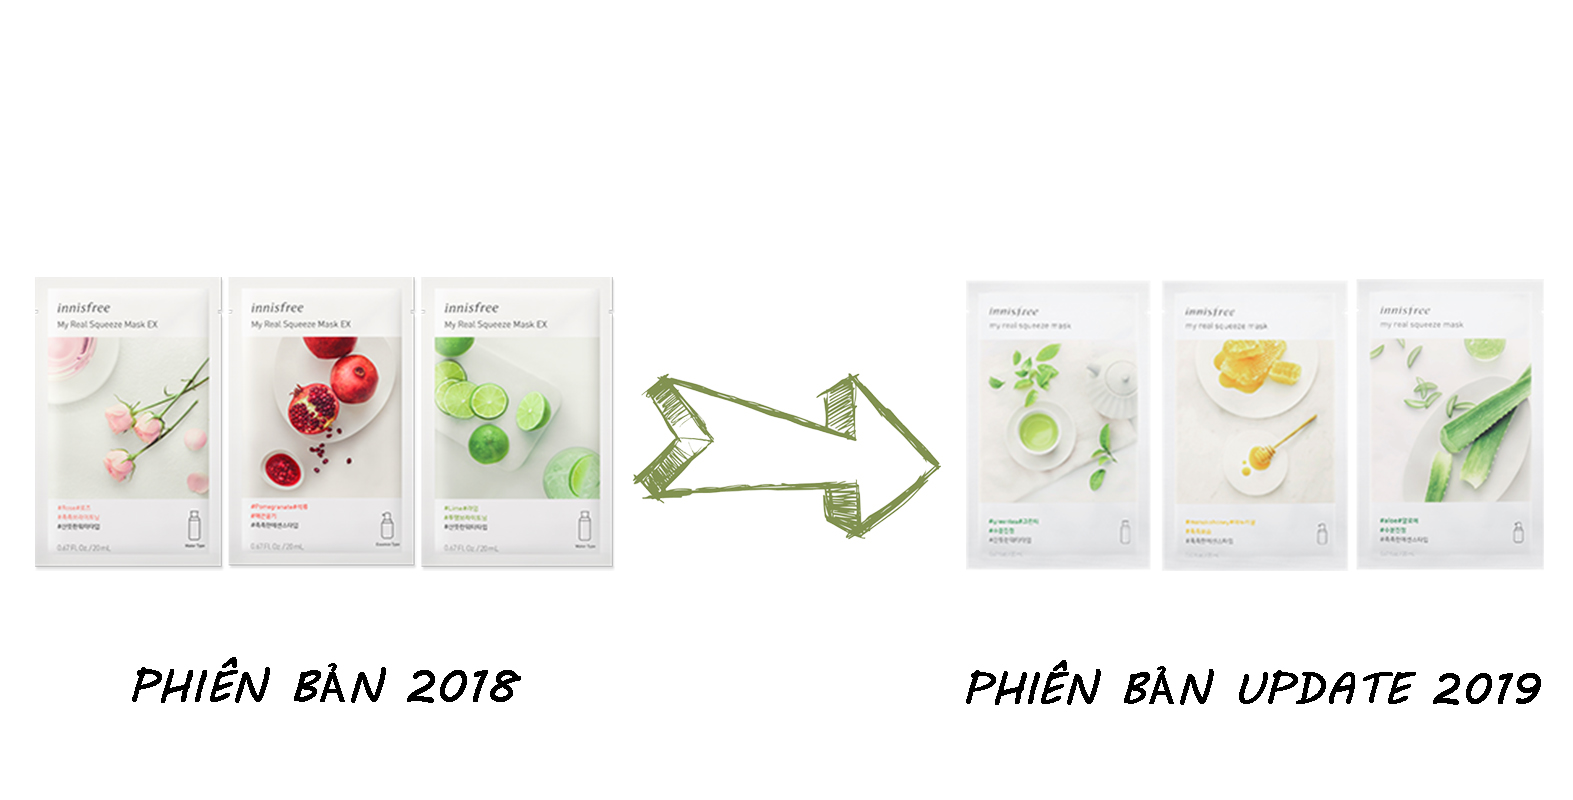 [NEW UPDATE 2019] Mặt Nạ Giấy Innisfree My Real Squeeze Mask EX